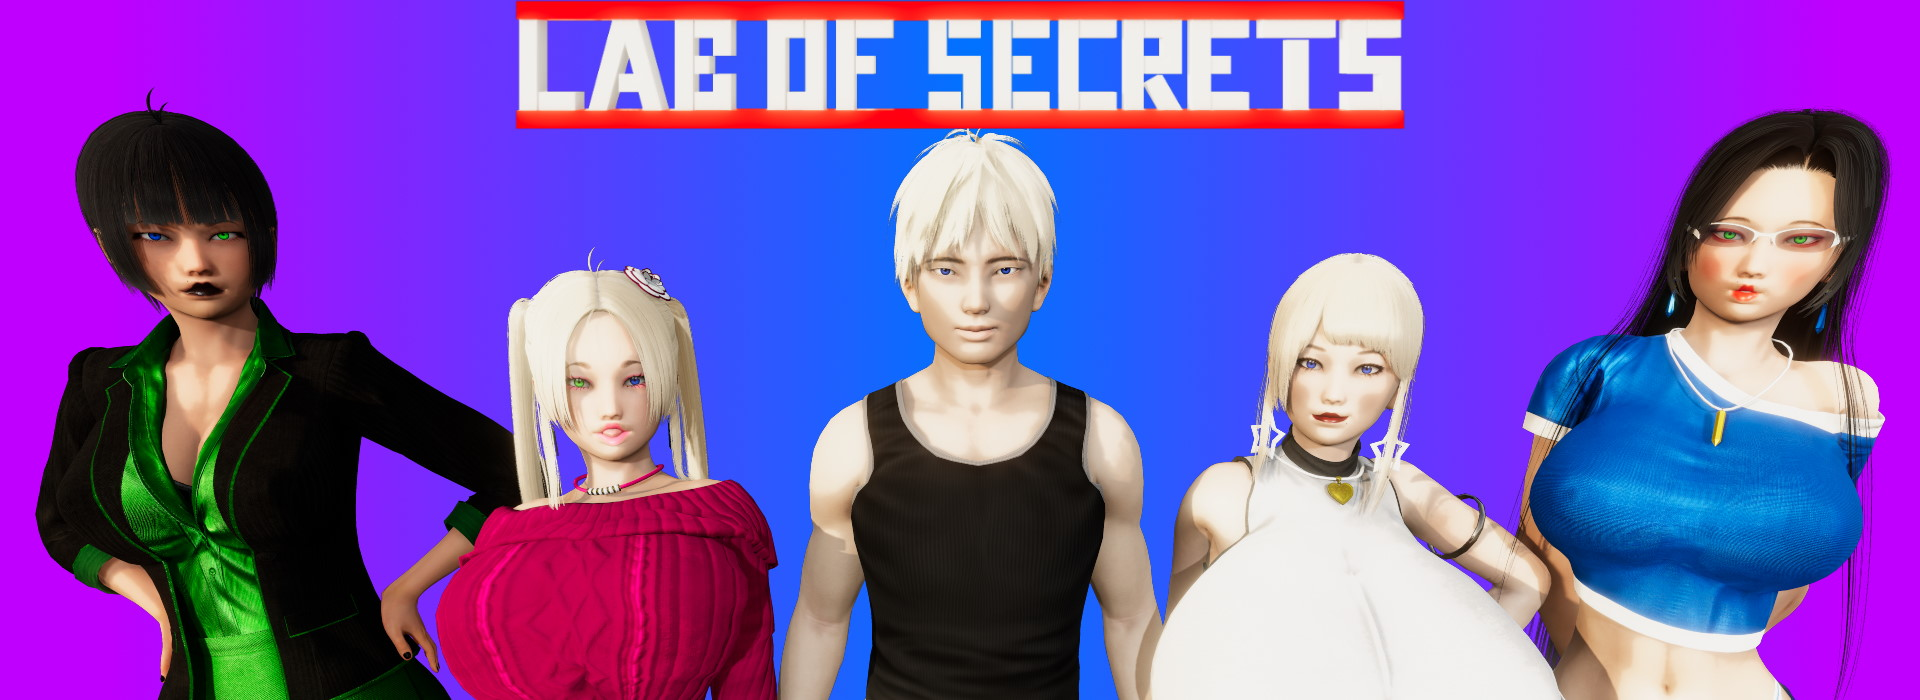 Lab of Secrets poster